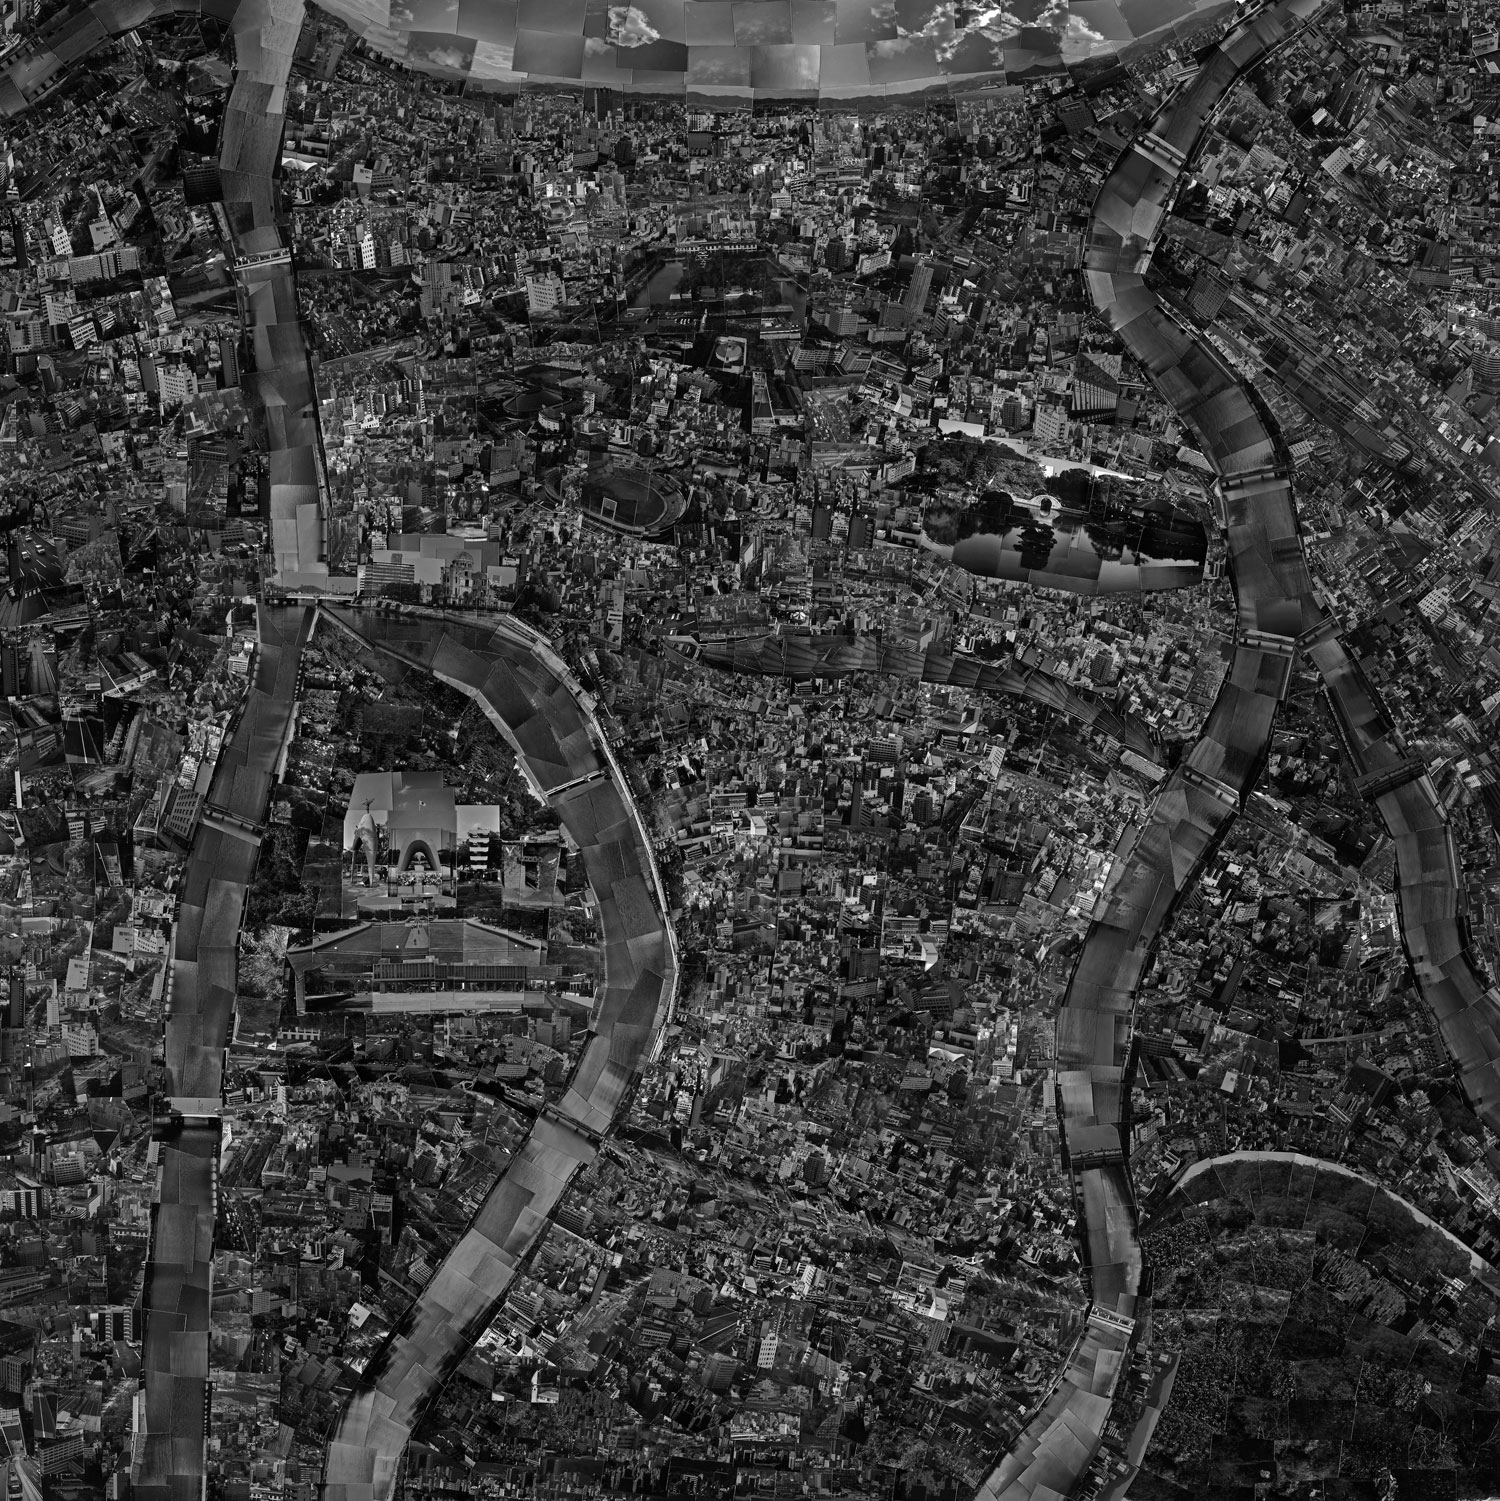 Diorama Map Hiroshima, 2003:  Hiroshima is situated as one of the most important cities in Japanese history. While I walked there, I thought about how the city recovered after the atomic bomb and tried to feel the atmosphere. Also, as I observed the city along the side of the river, the atmosphere intensified. The volume of the river in this work has consequently increased.